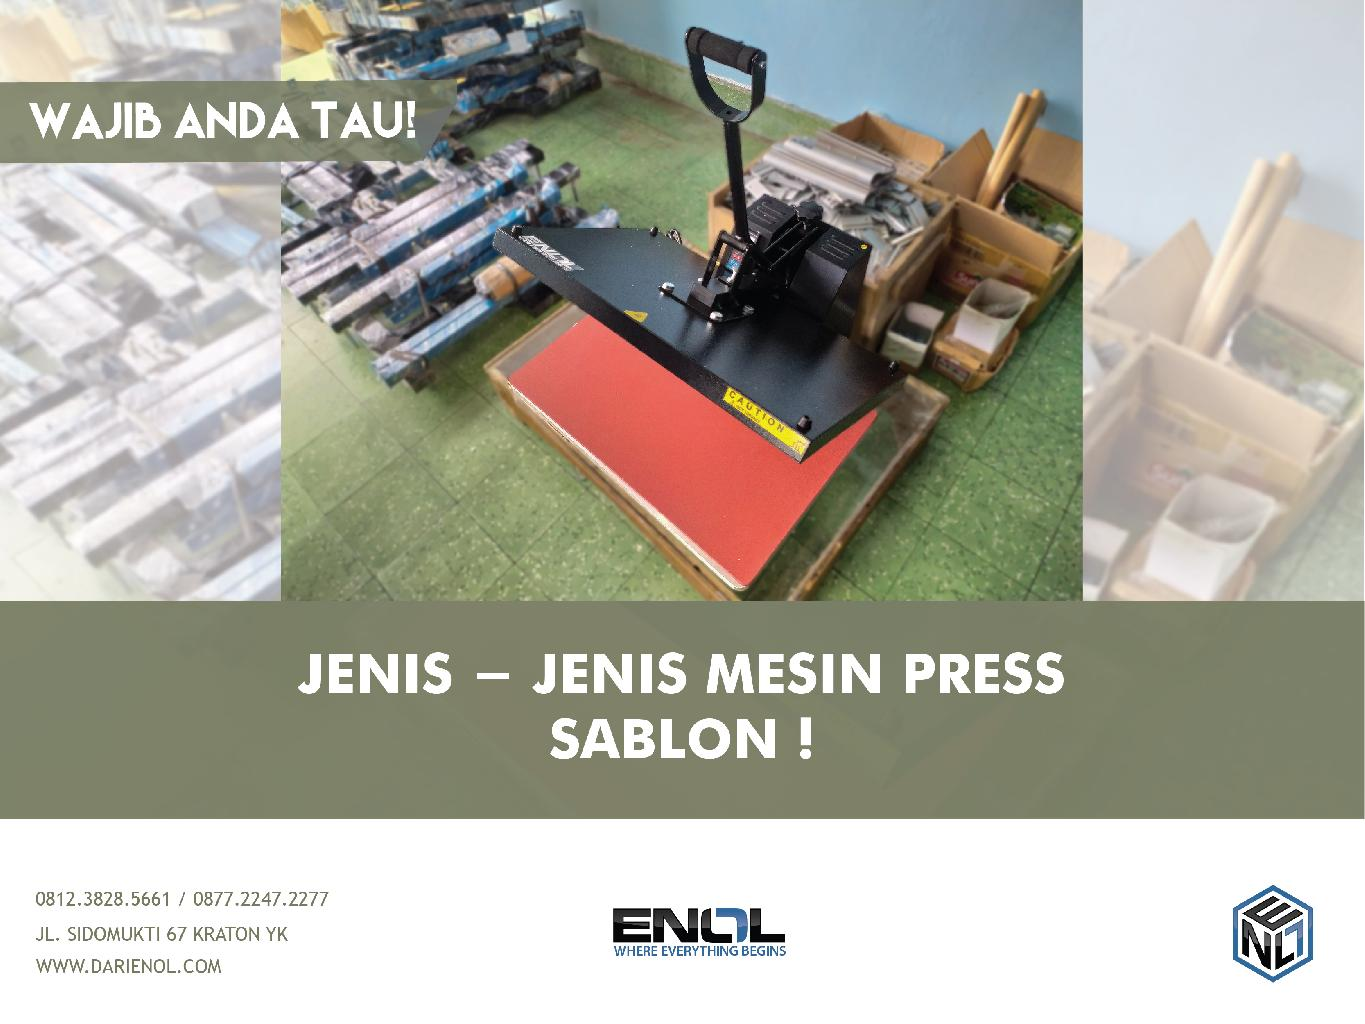 JENIS - JENIS MESIN PRESS SABLON